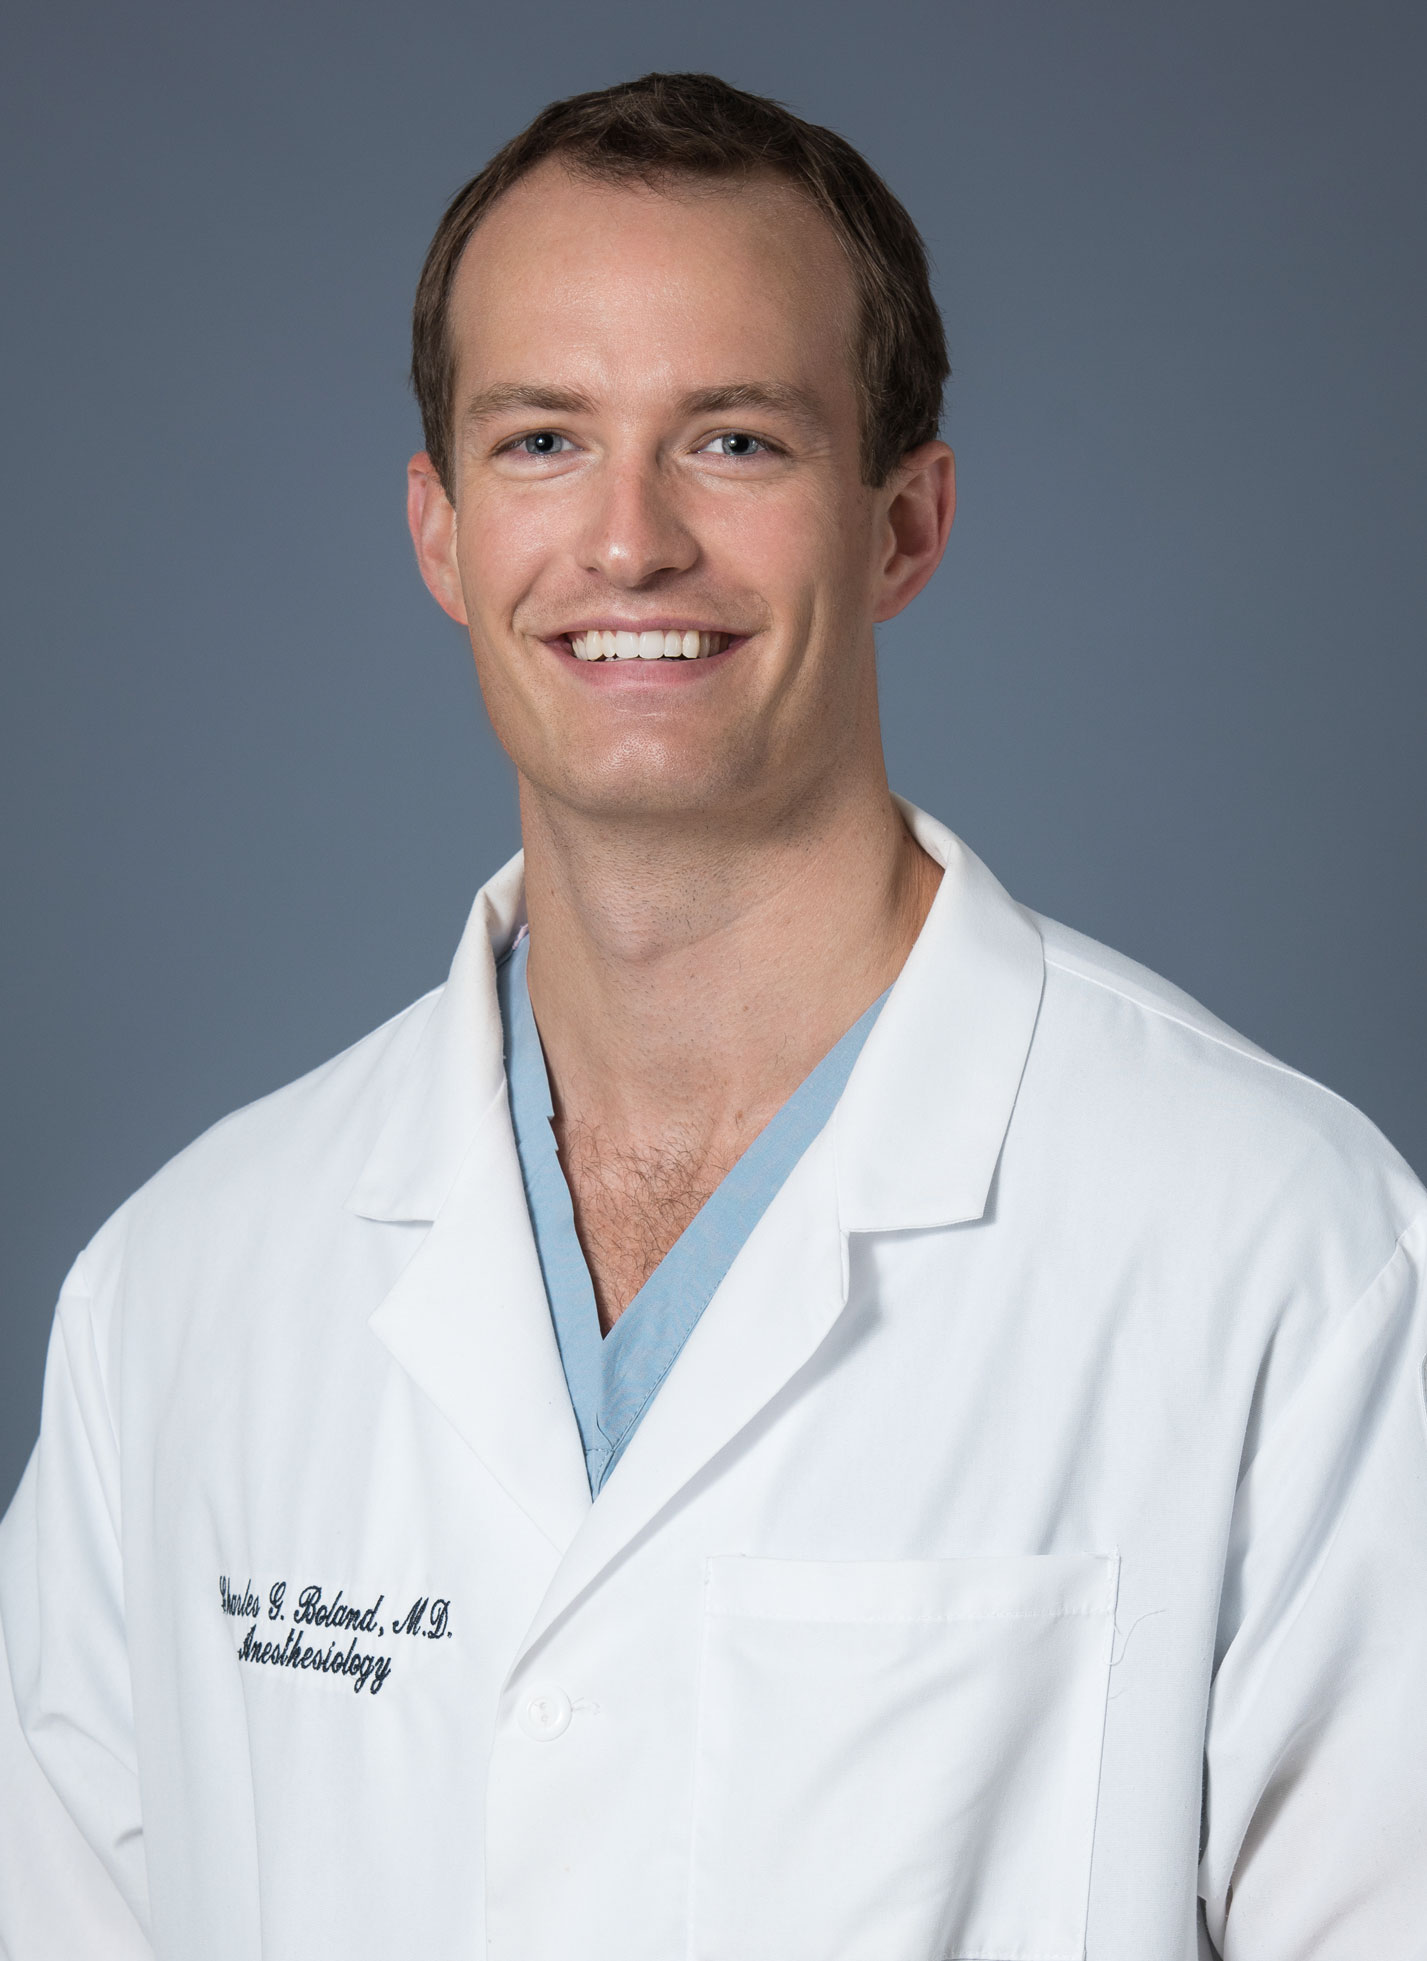 Dr. Charles Gil Boland, Trinity Grad and CCHHS chief resident